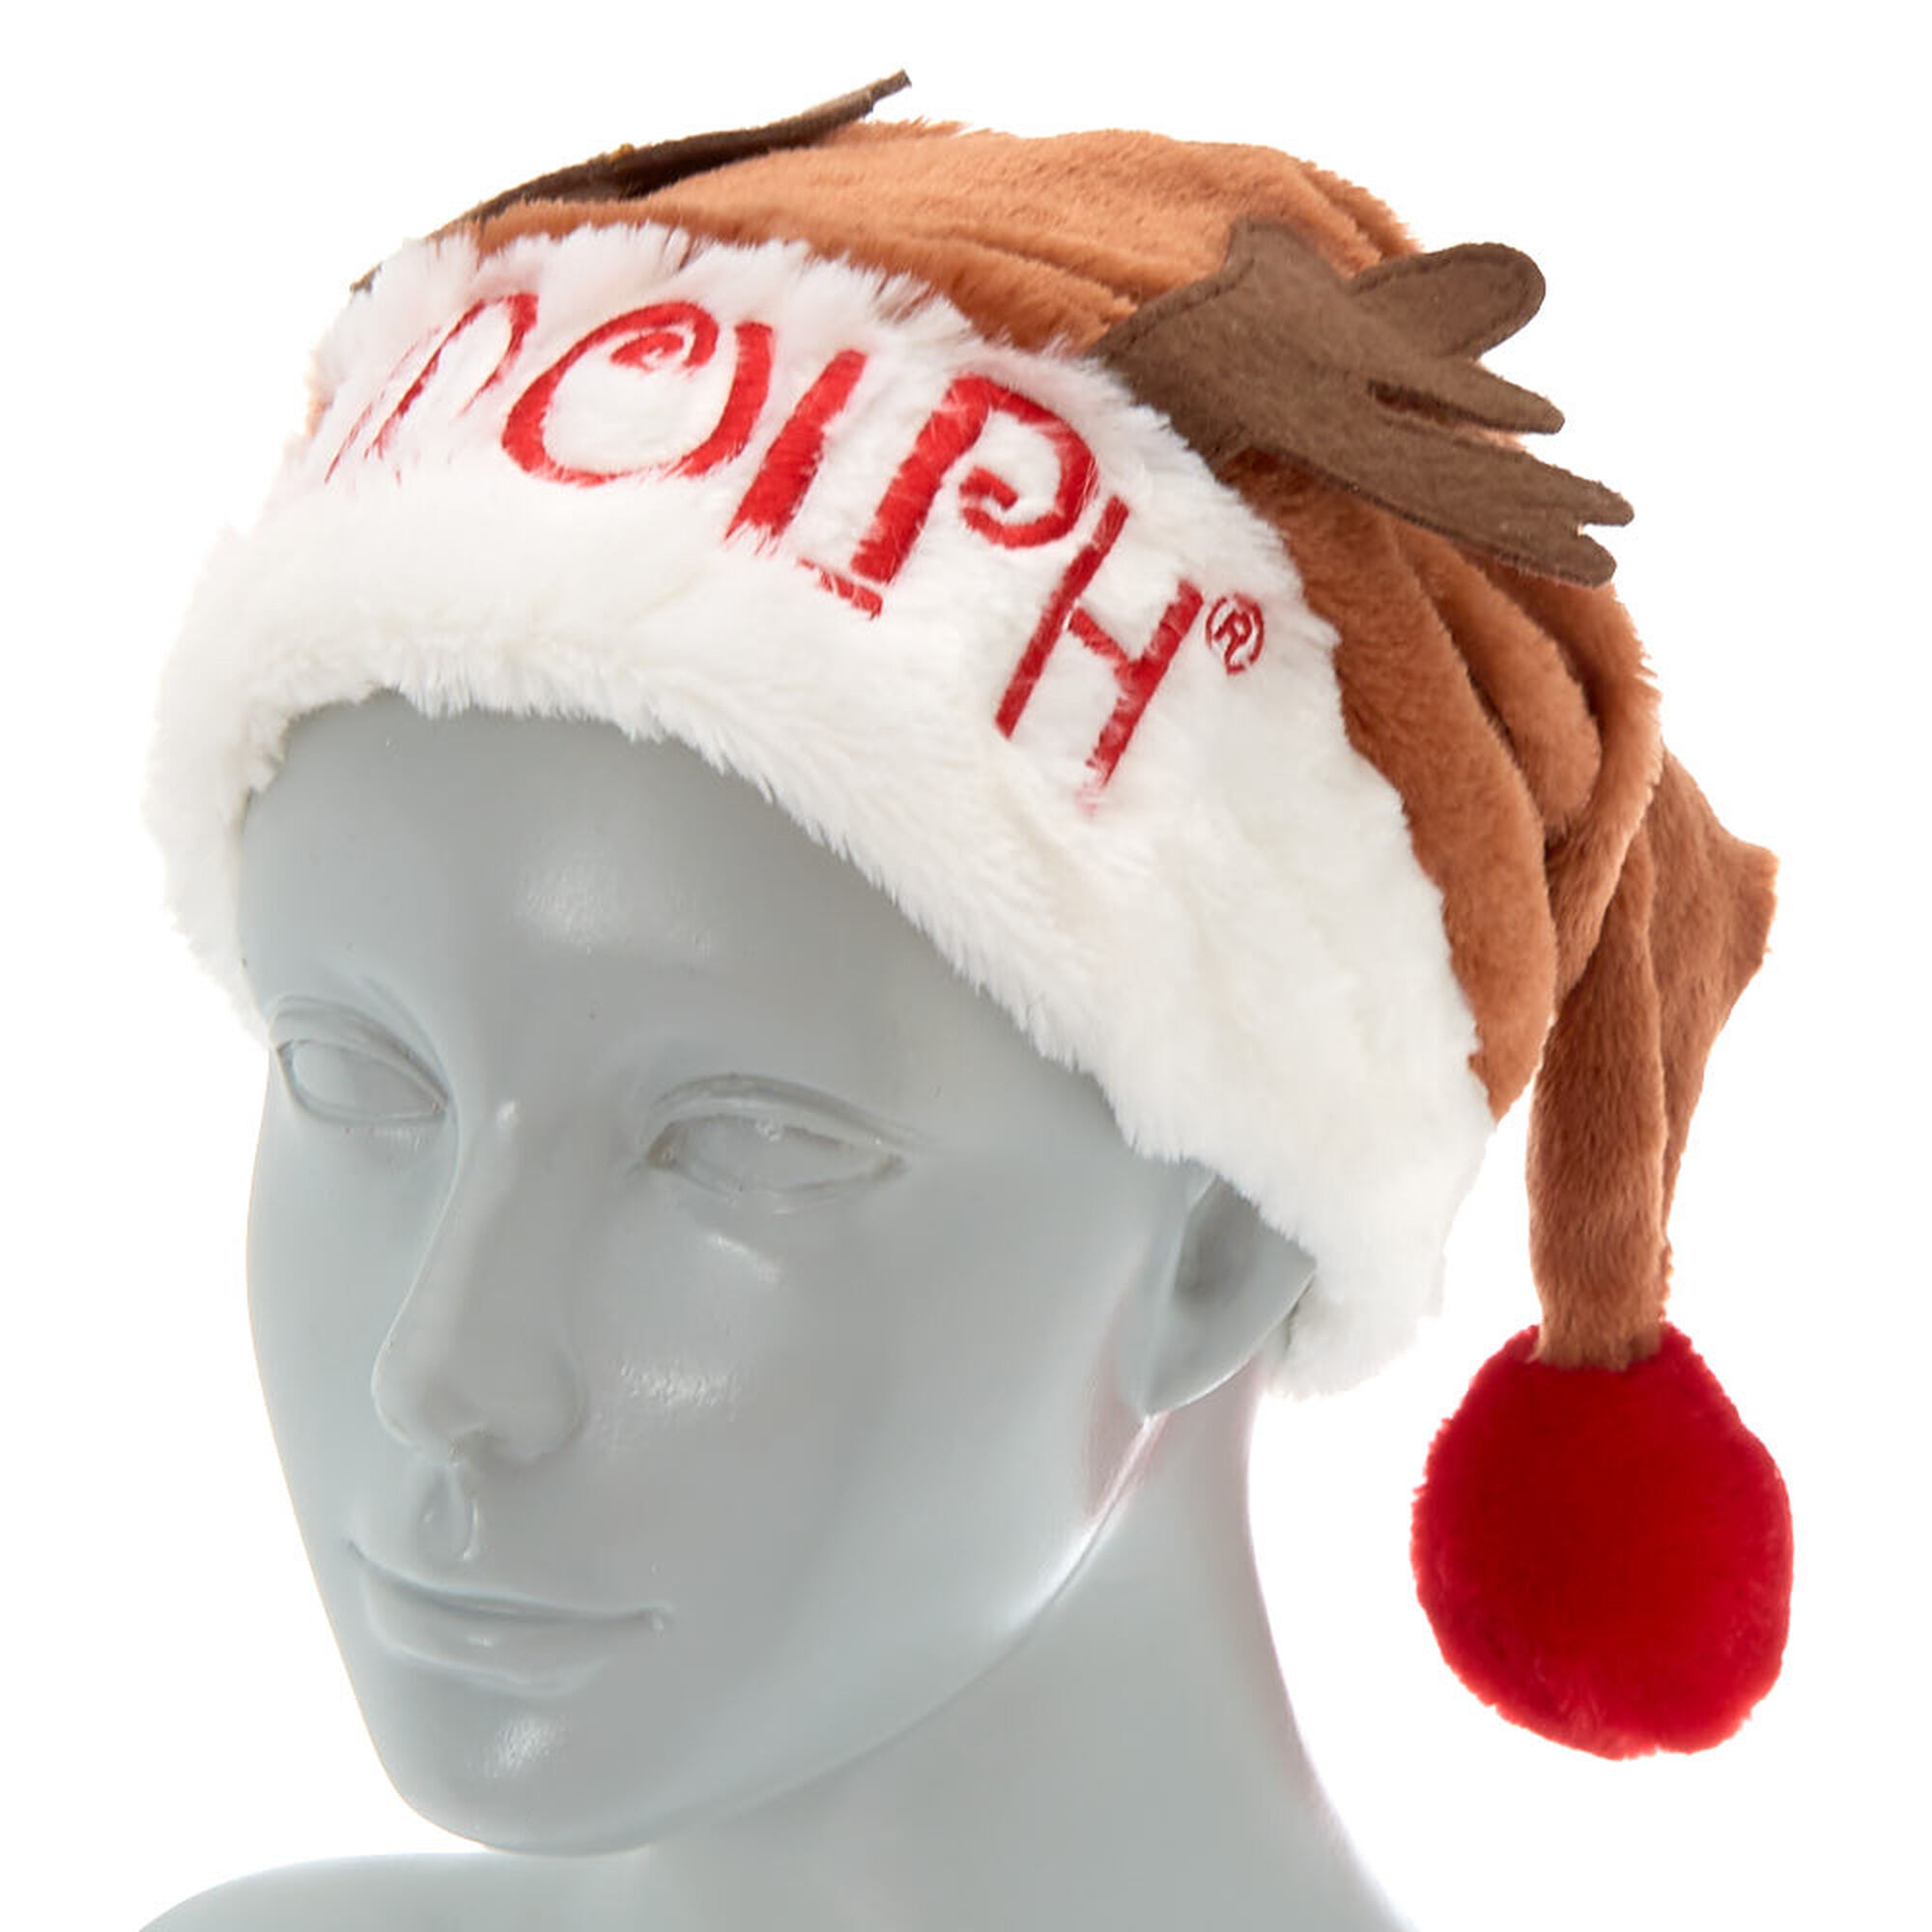 2f8d6fac7f741 ... Rudolph the Red-Nosed Reindeer Santa Hat